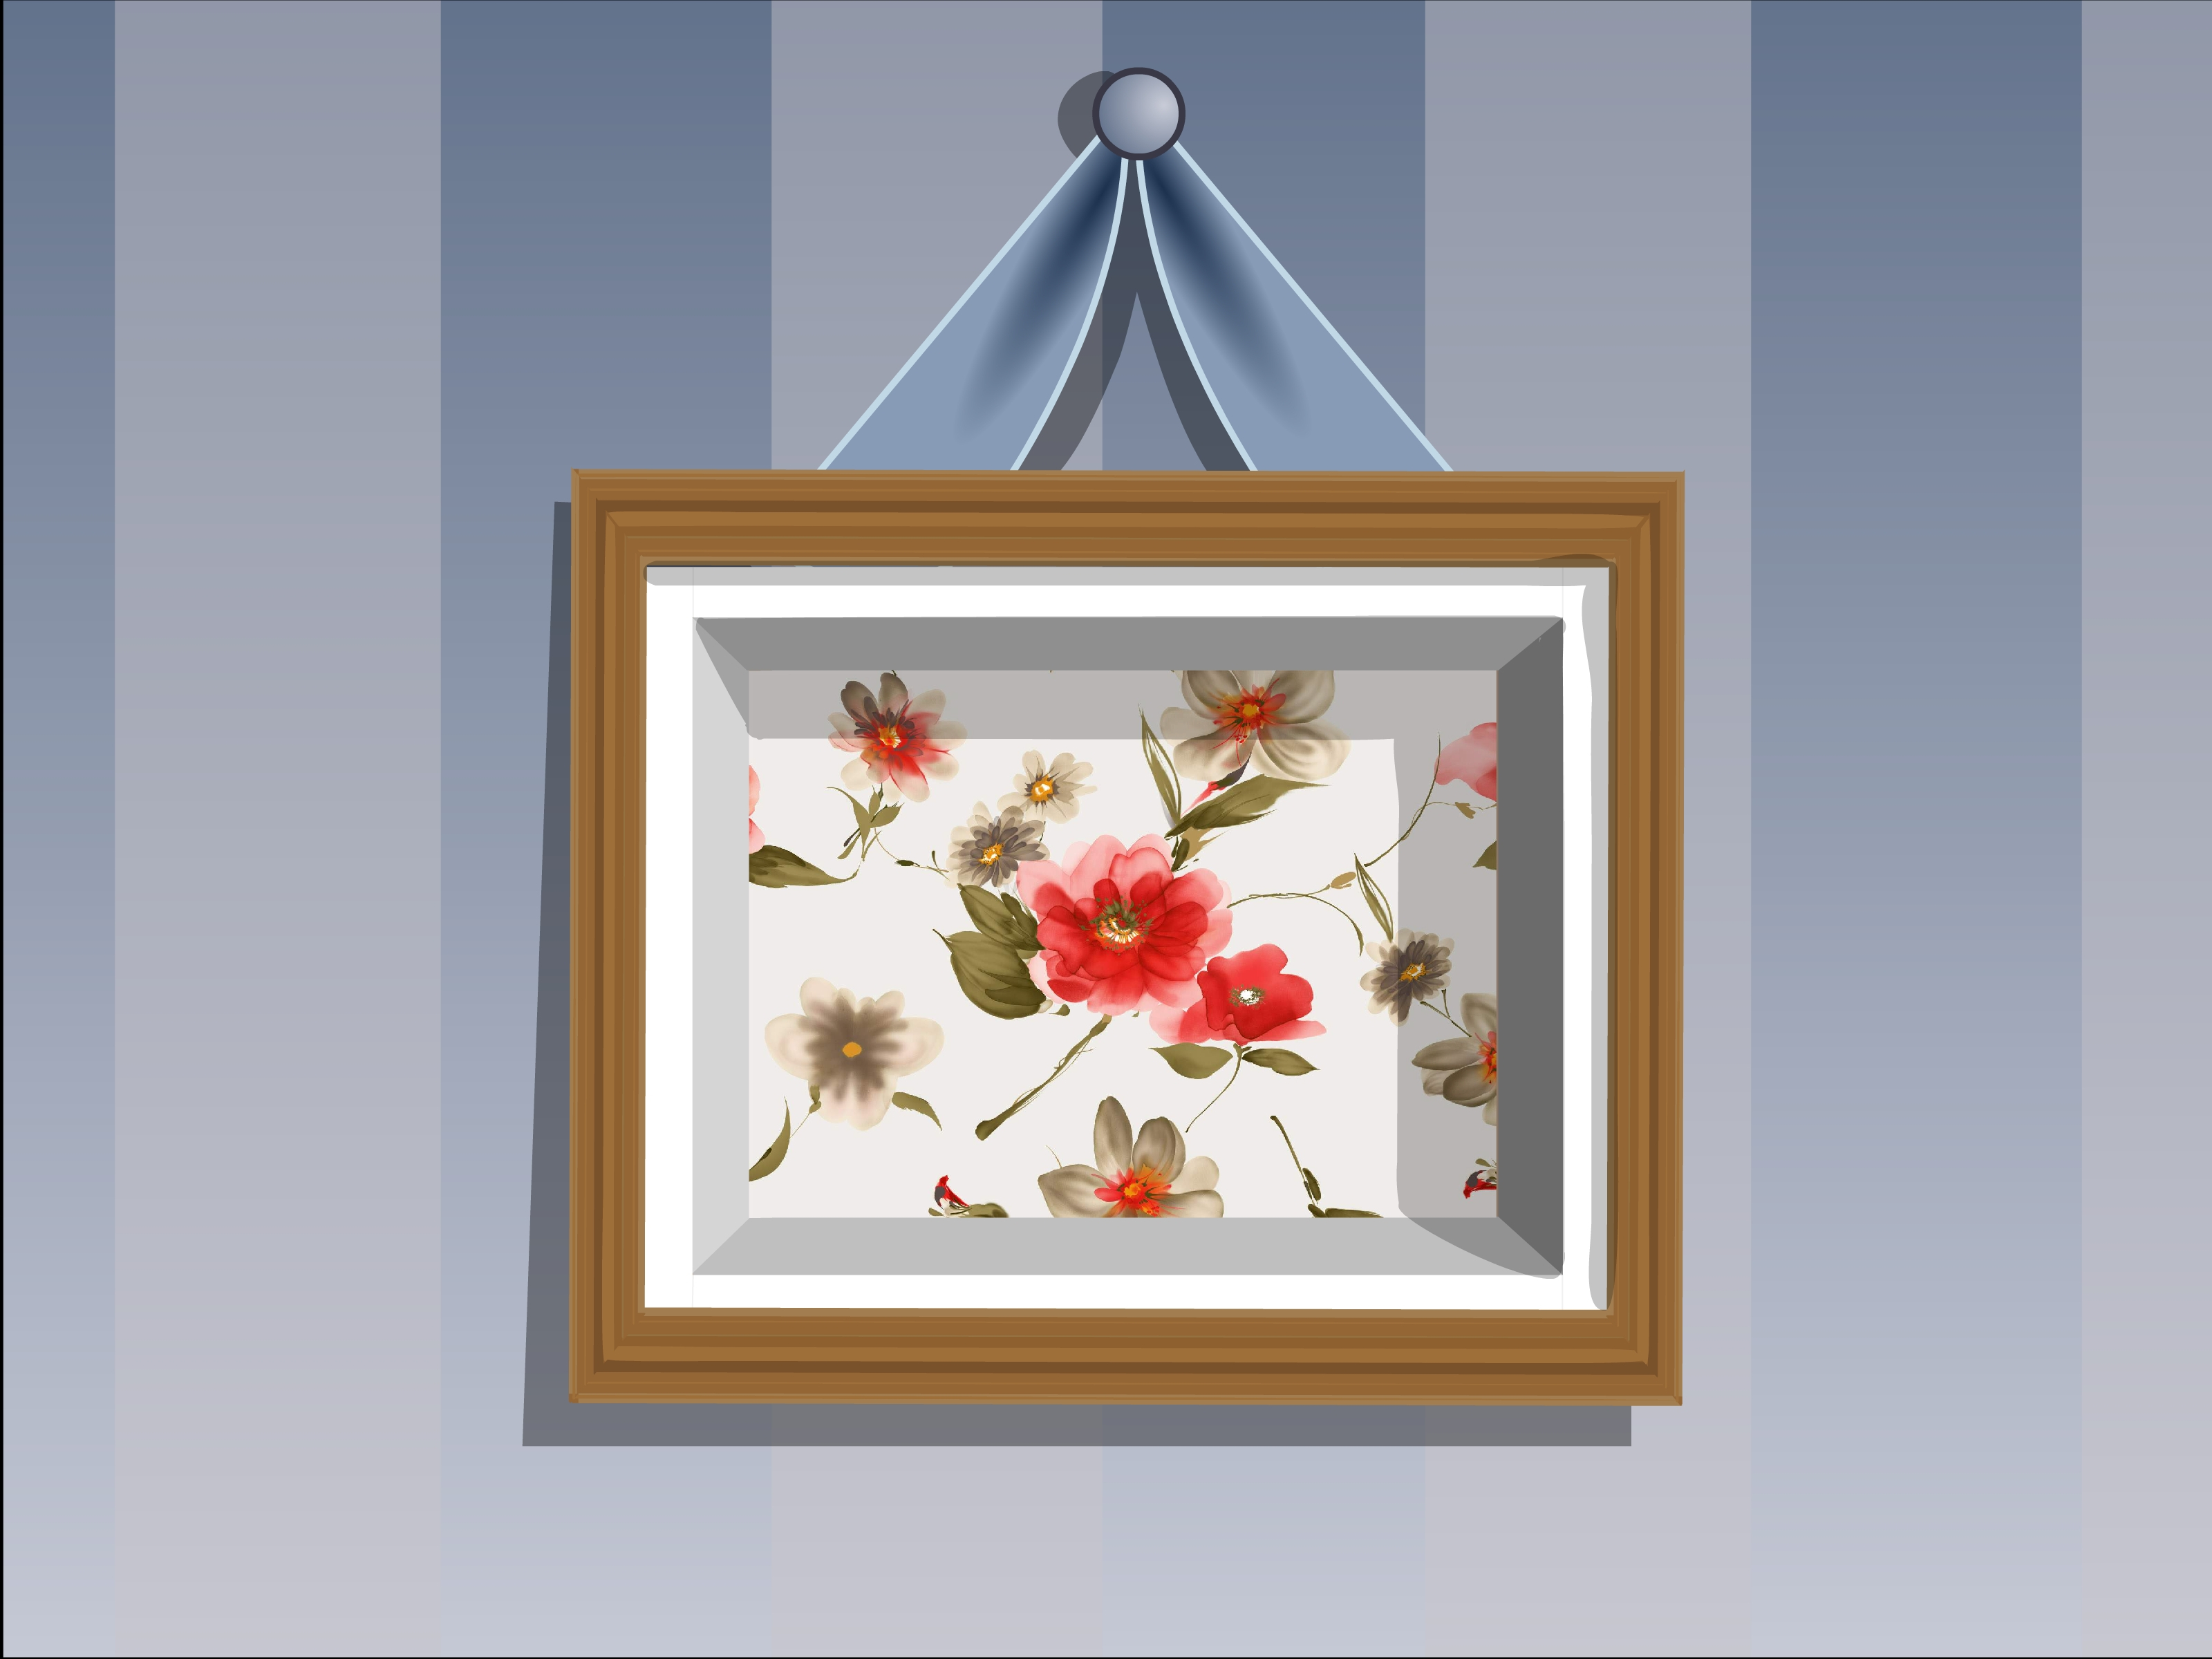 How To Make A Shadow Box Frame: 11 Steps (With Pictures Within Caja Rectangle Glass Frame Wall Mirrors (View 18 of 30)